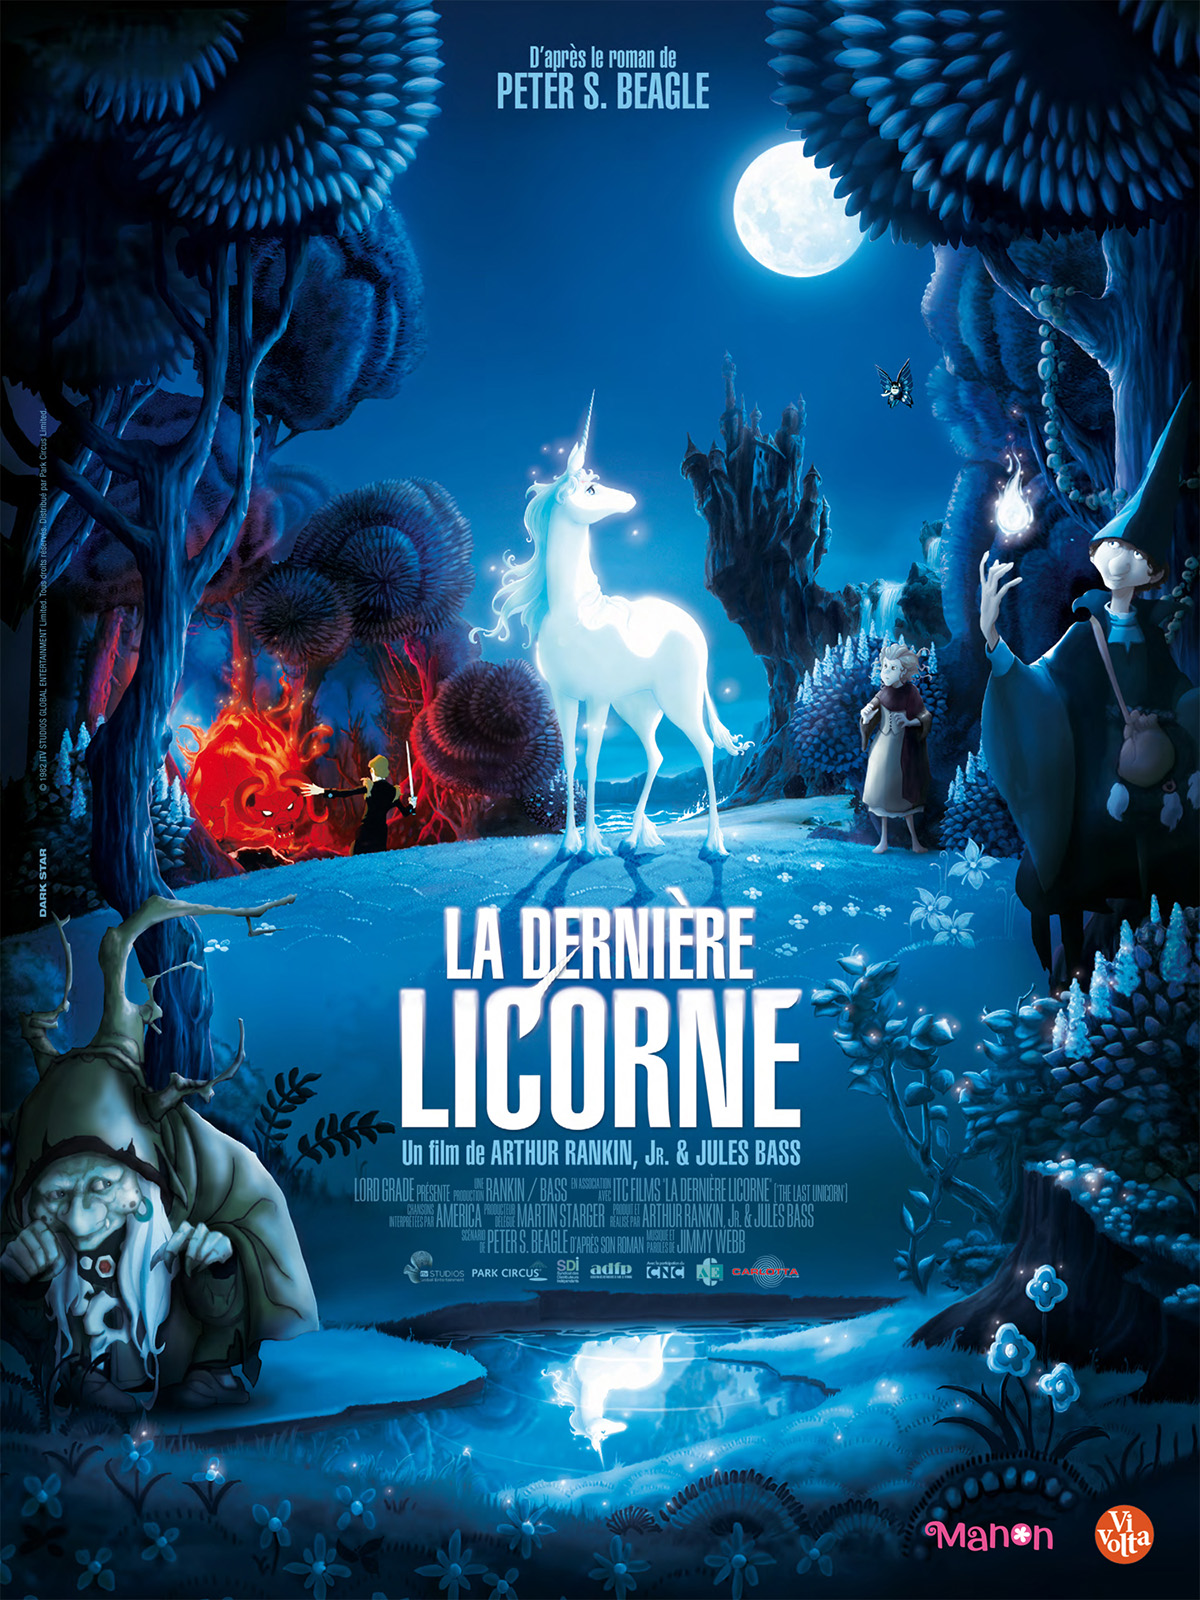 la derni re licorne 1982 vf repack hd maison les films introuvables. Black Bedroom Furniture Sets. Home Design Ideas